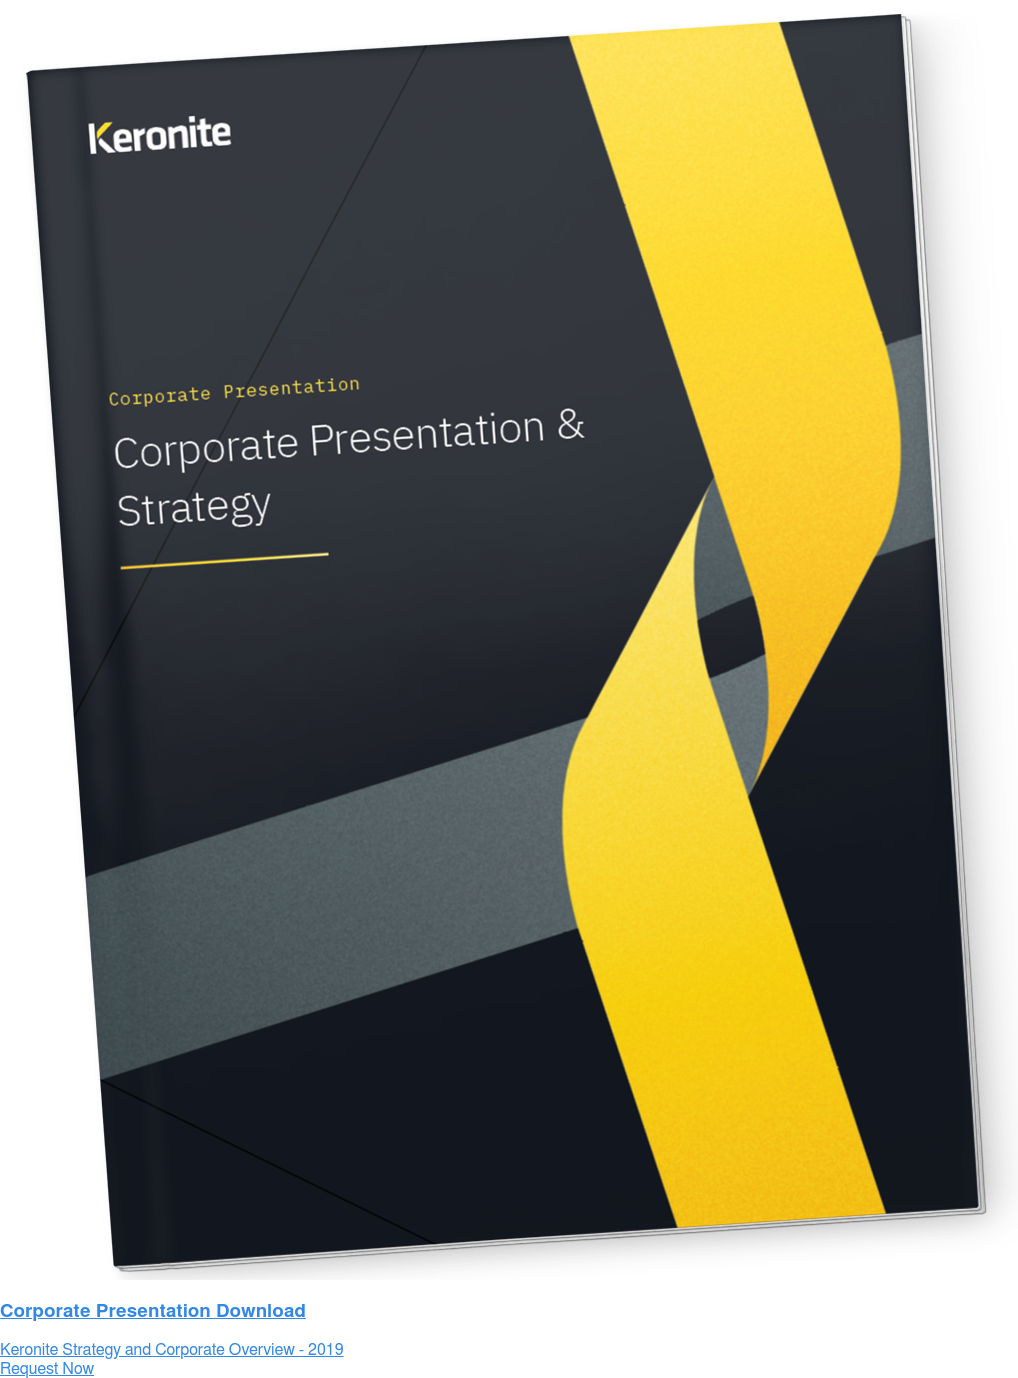 Corporate Presentation Download Keronite Strategy and Corporate Overview - 2019 Request Now